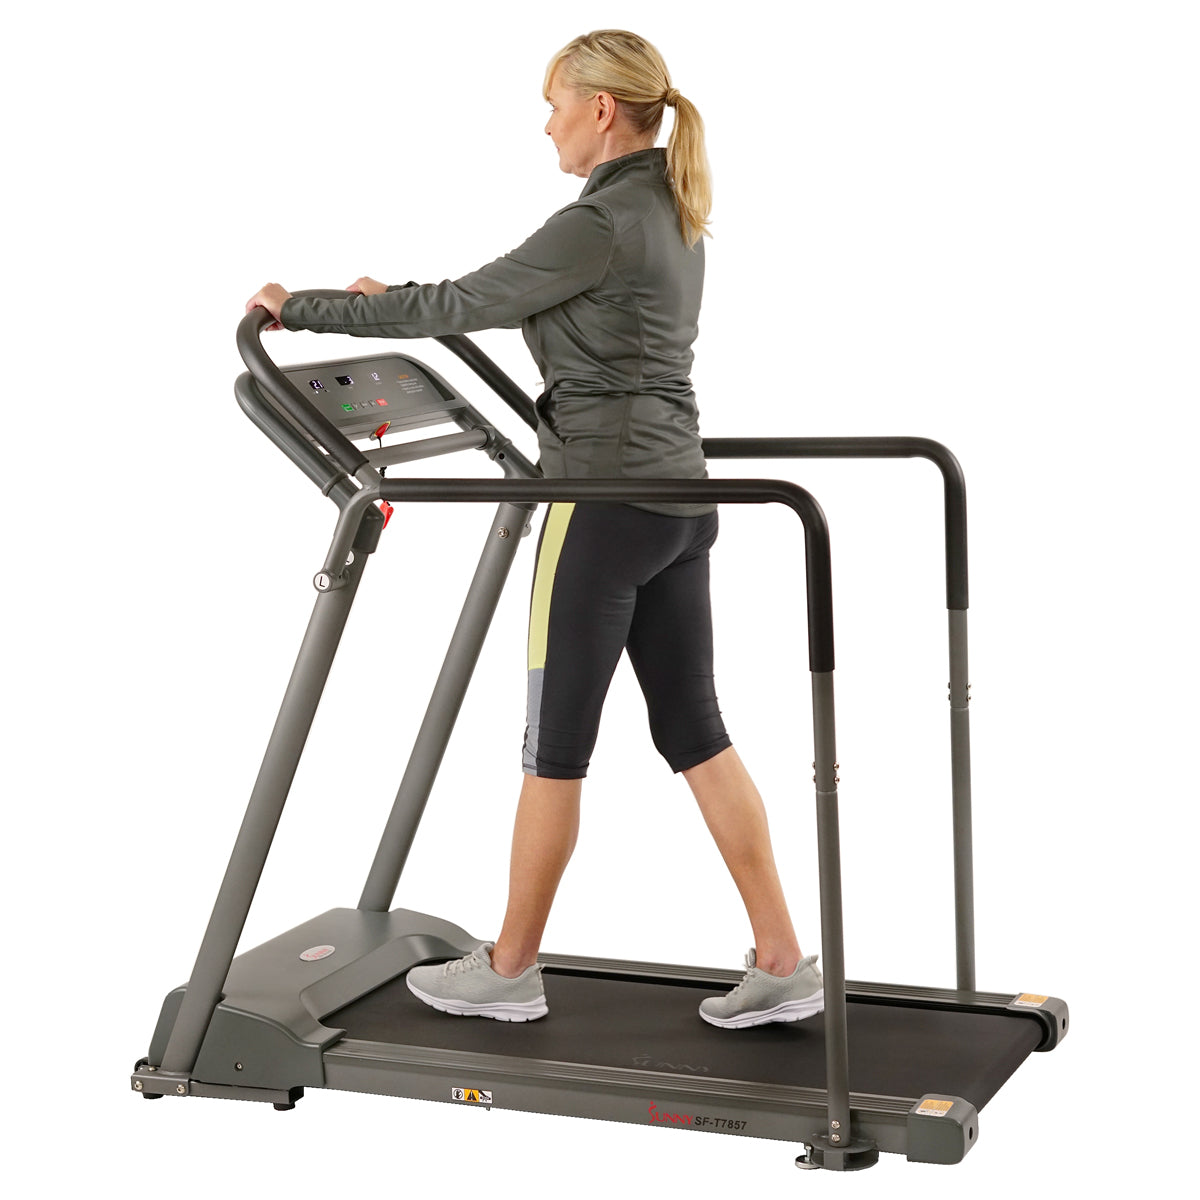 sunny-health-fitness-treadmills-recovery-walking-treadmill-low-pro-deck-multi-grip-handlerails-mobility-balance-support-SF-T7857-shockabsorption